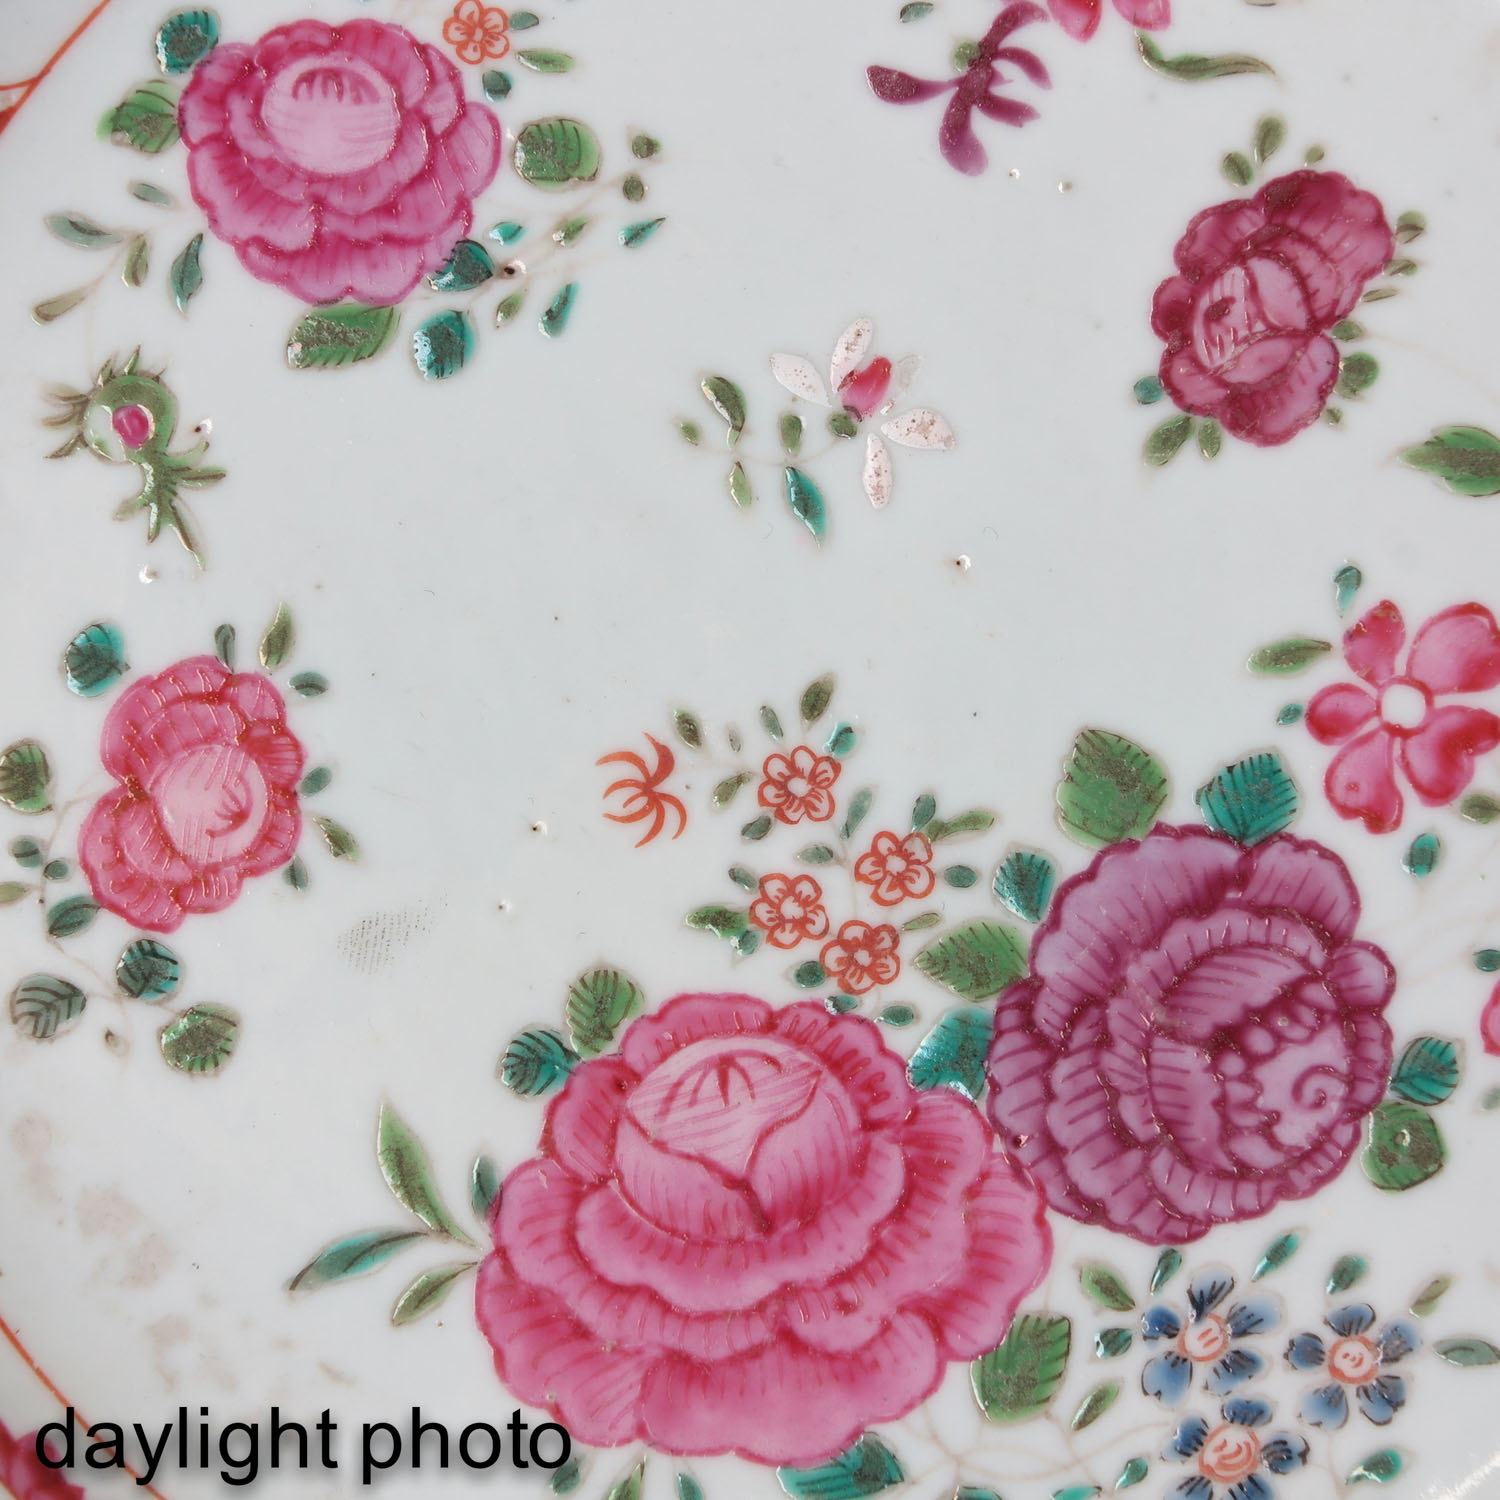 A Series of 5 Famille Rose Plates - Image 9 of 9